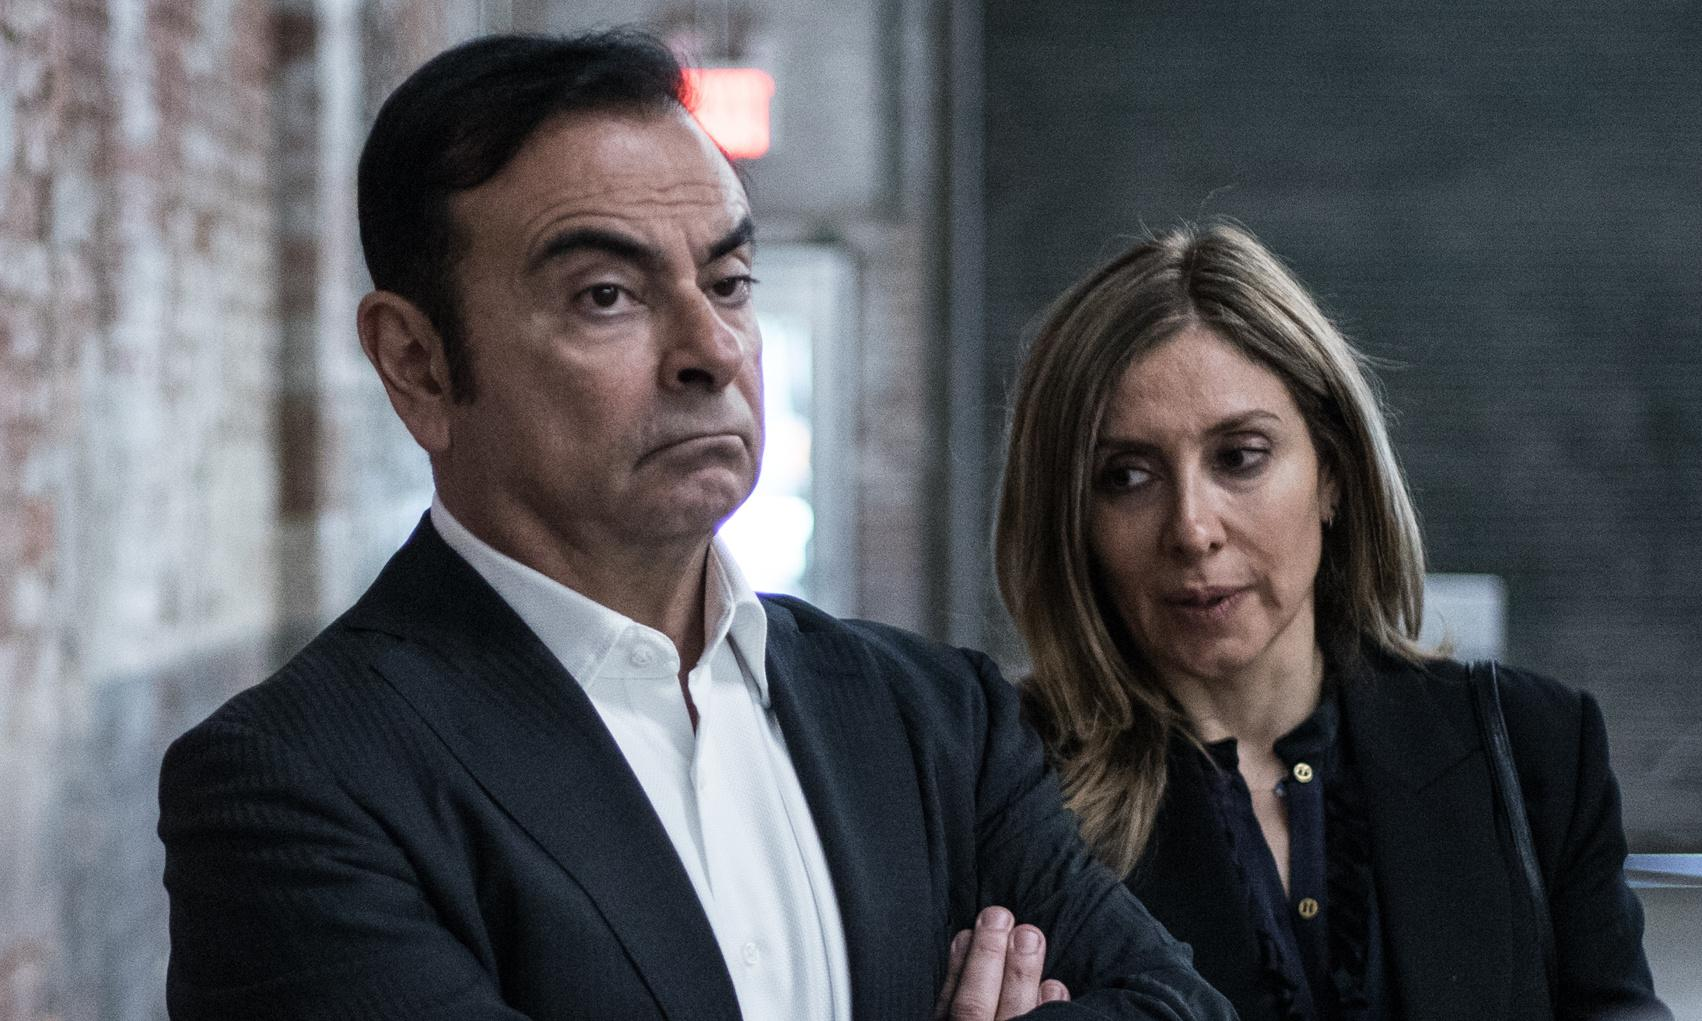 Carlos Ghosn's wife urges Trump to support her husband